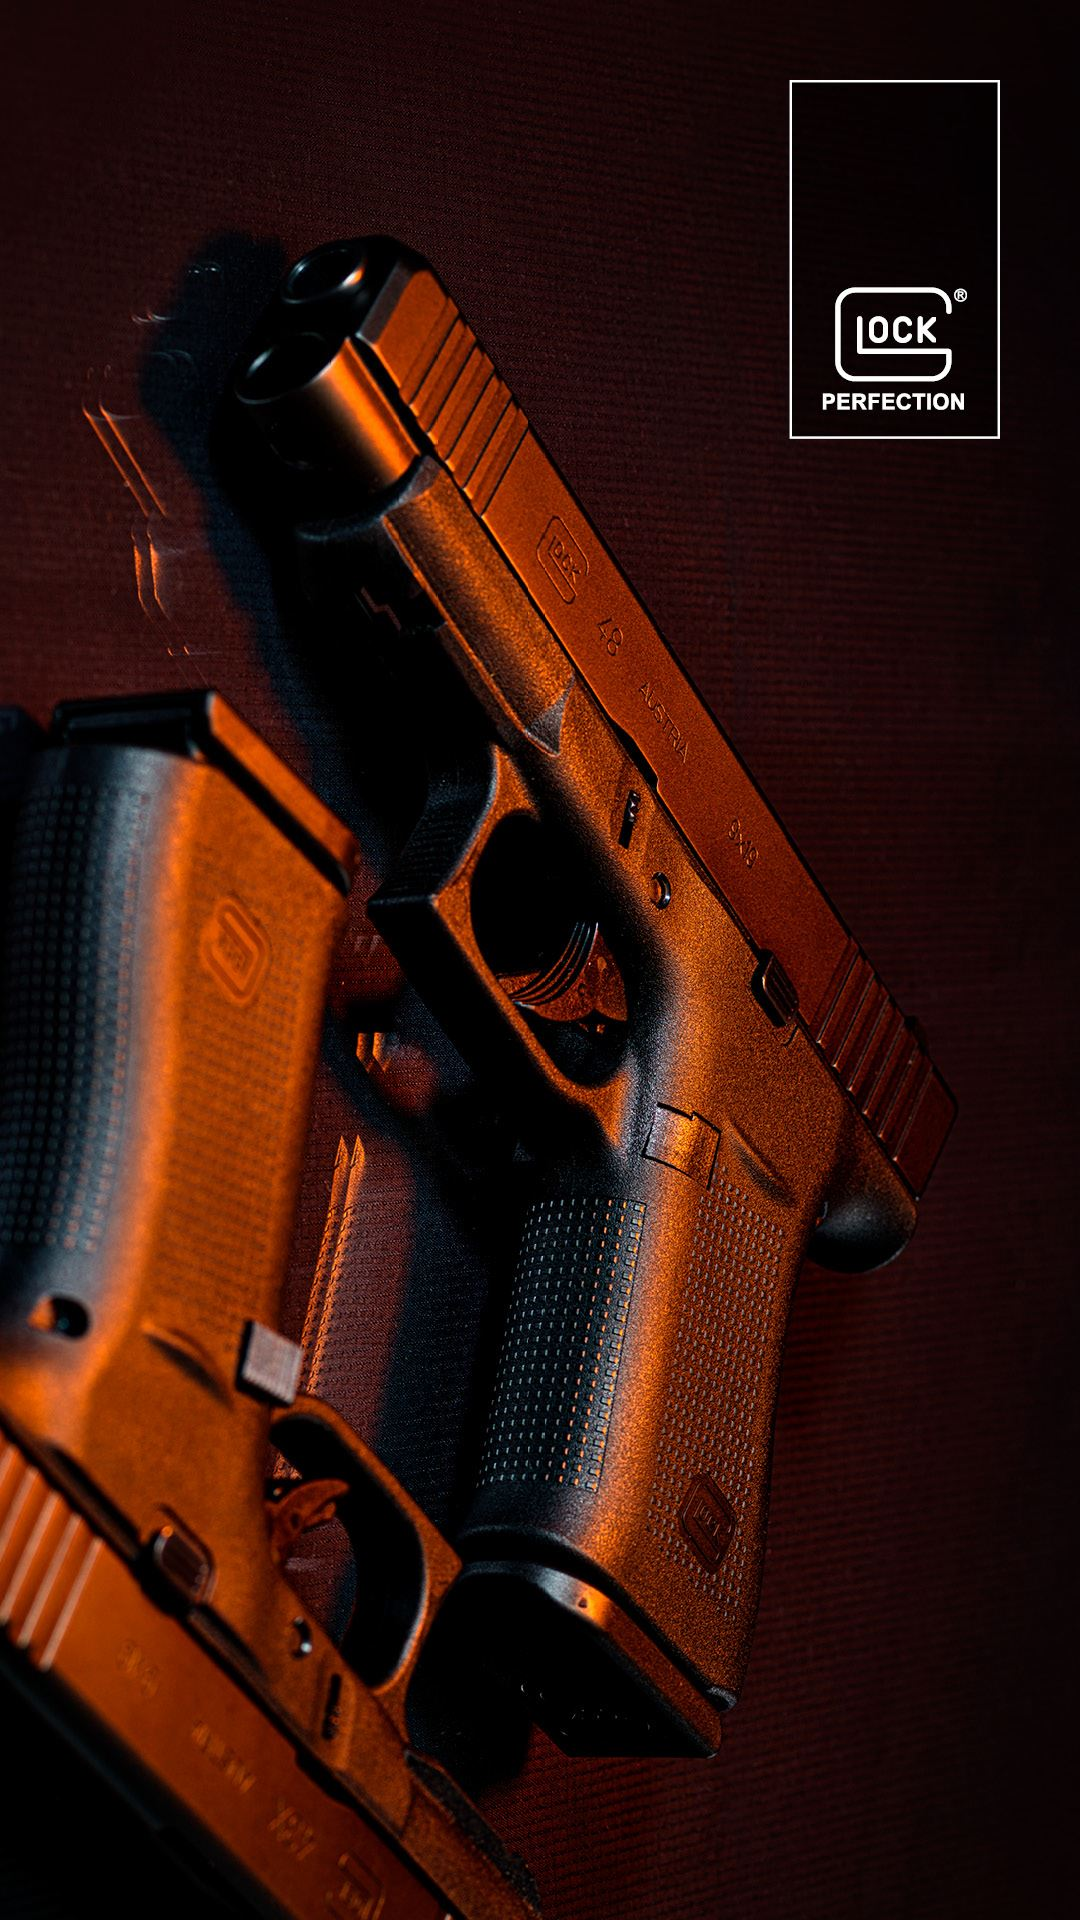 GLOCK Perfection   Download area